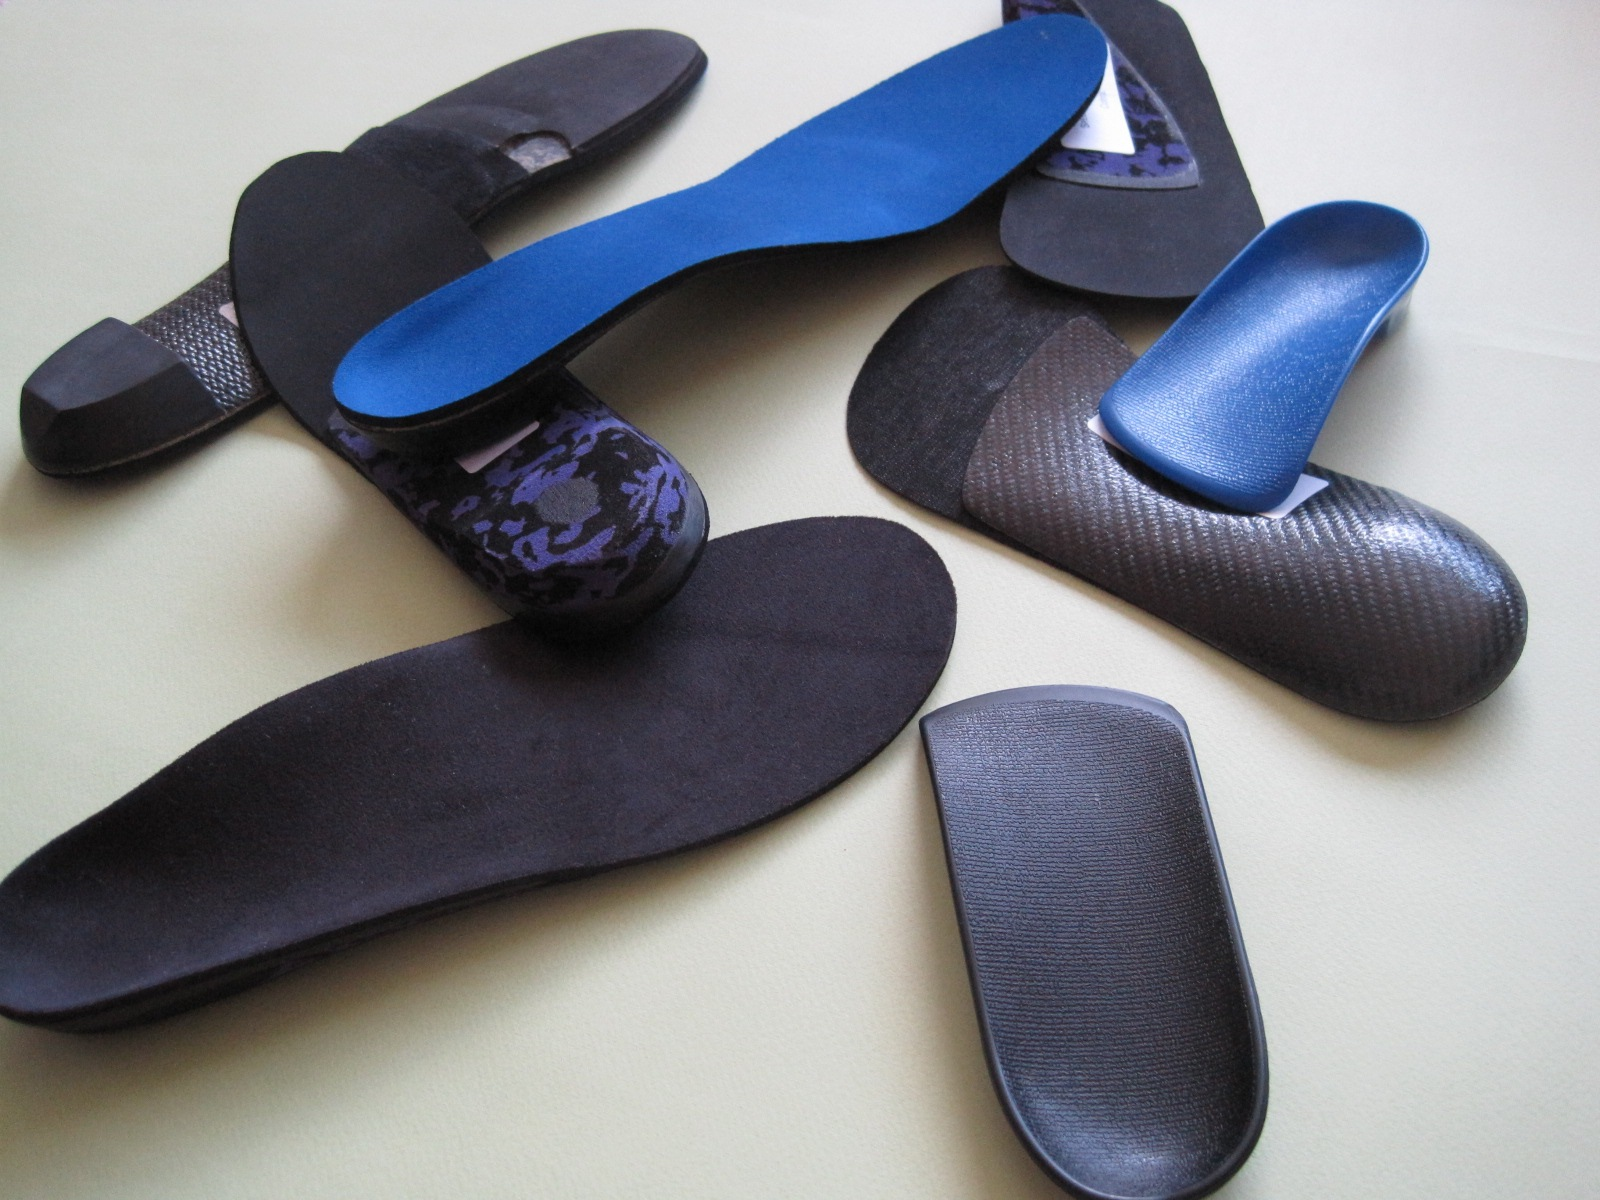 Houston custom orthotics help runners gain speed and efficiency